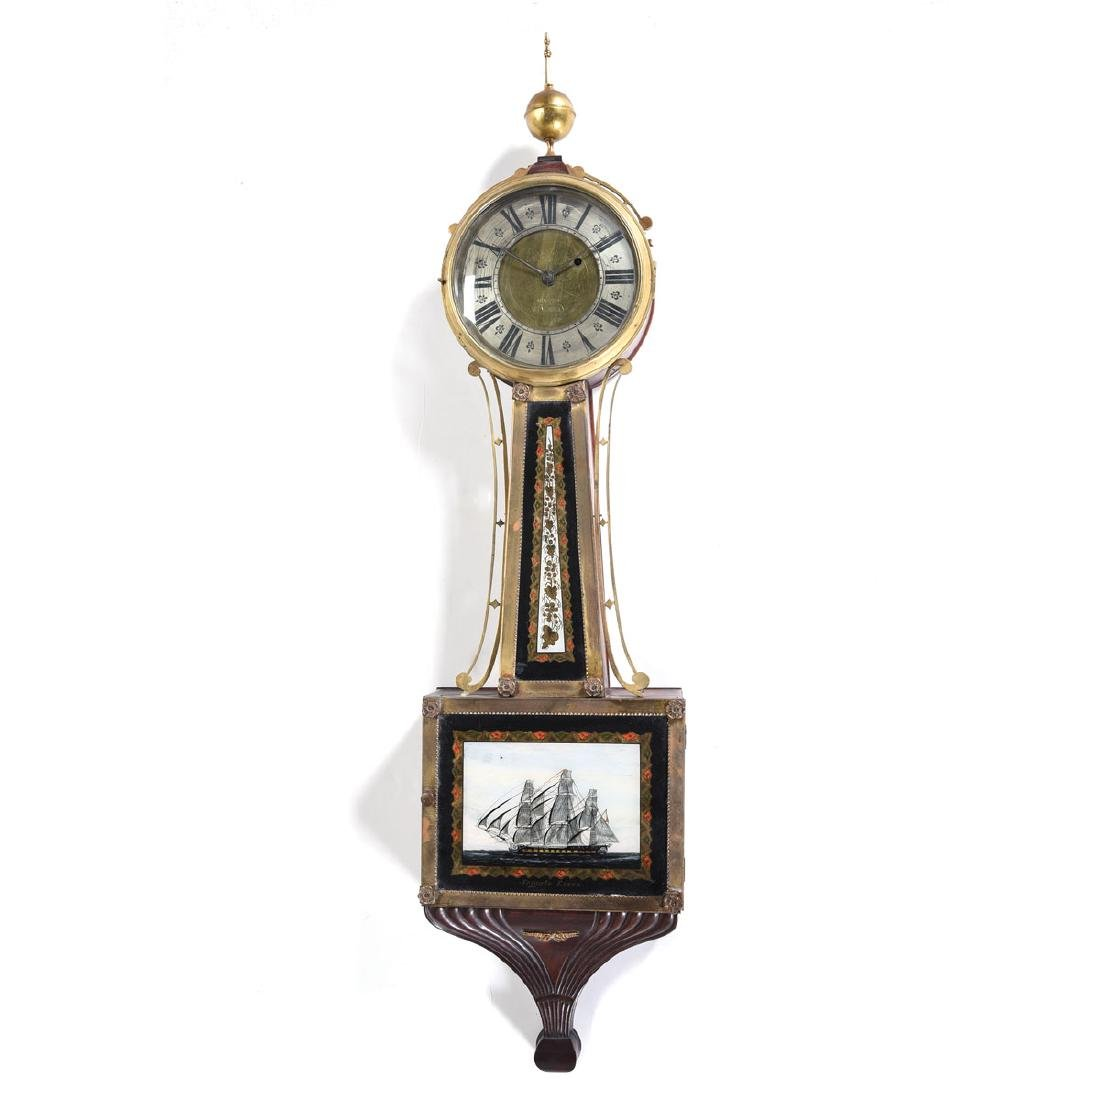 New England Banjo Clock, Inlaid with Gilt Eglomise